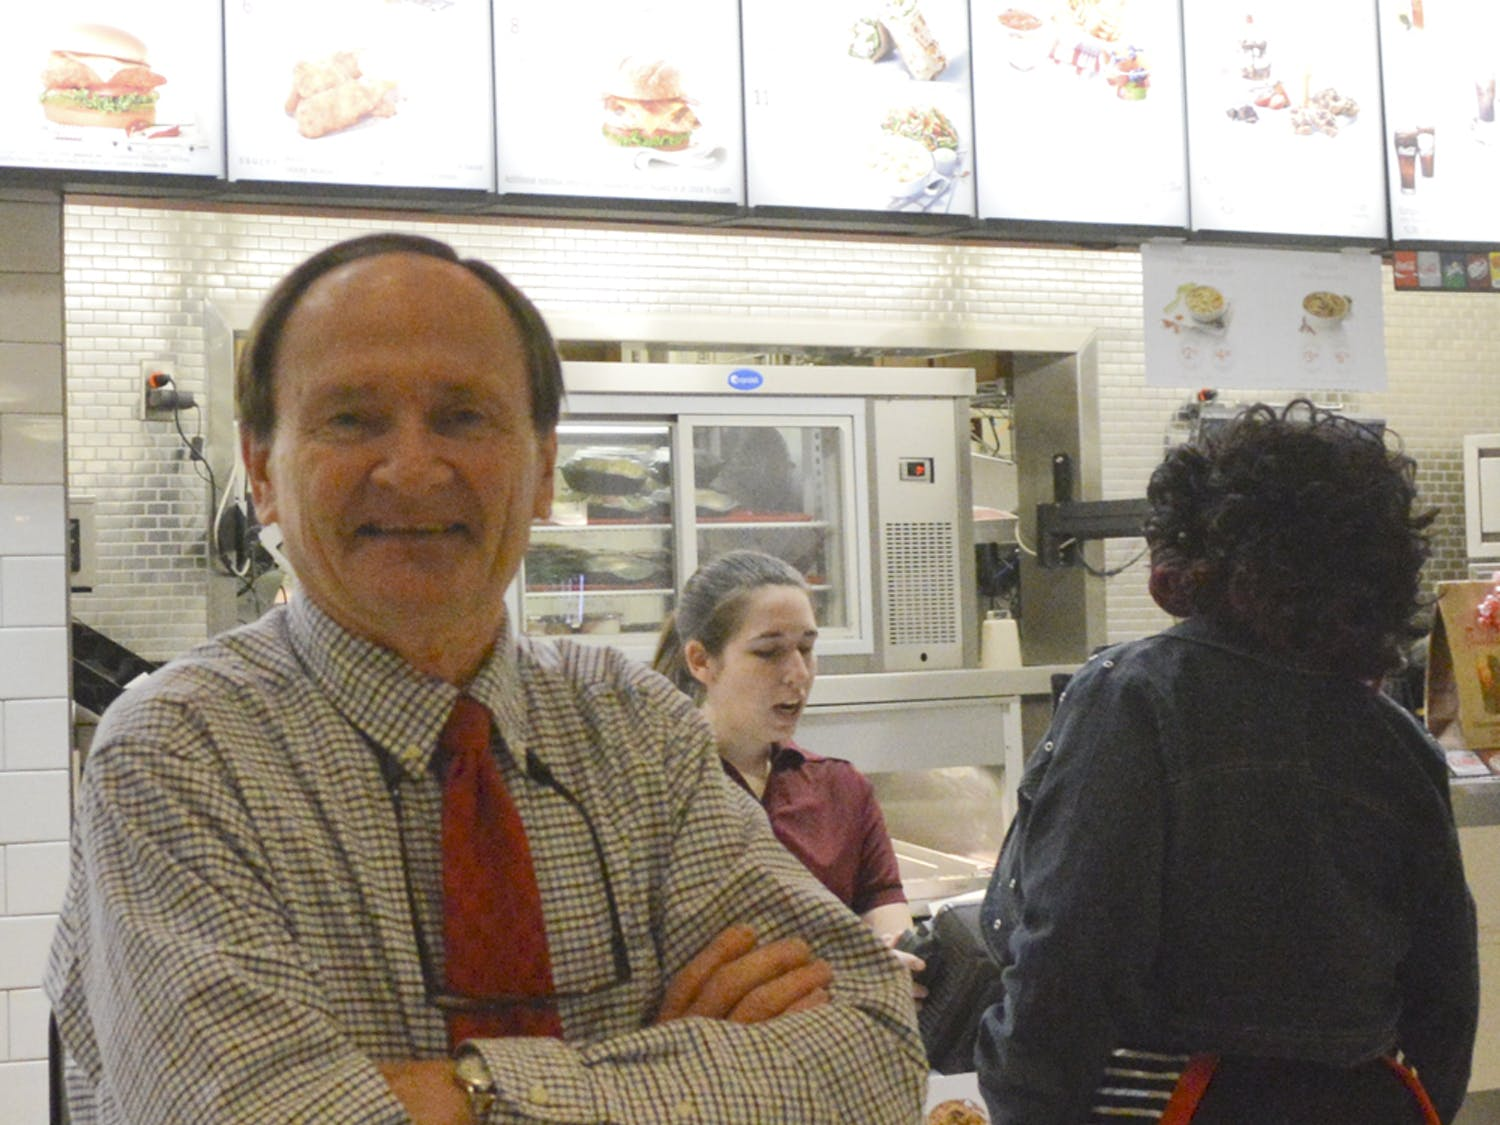 Steve Carroll, owner of the Oaks Mall's last locally owned store, stands in Chick-fil-a and poses for a picture. Carroll's restaurant opened in 1978 and was one of the mall's original stores.